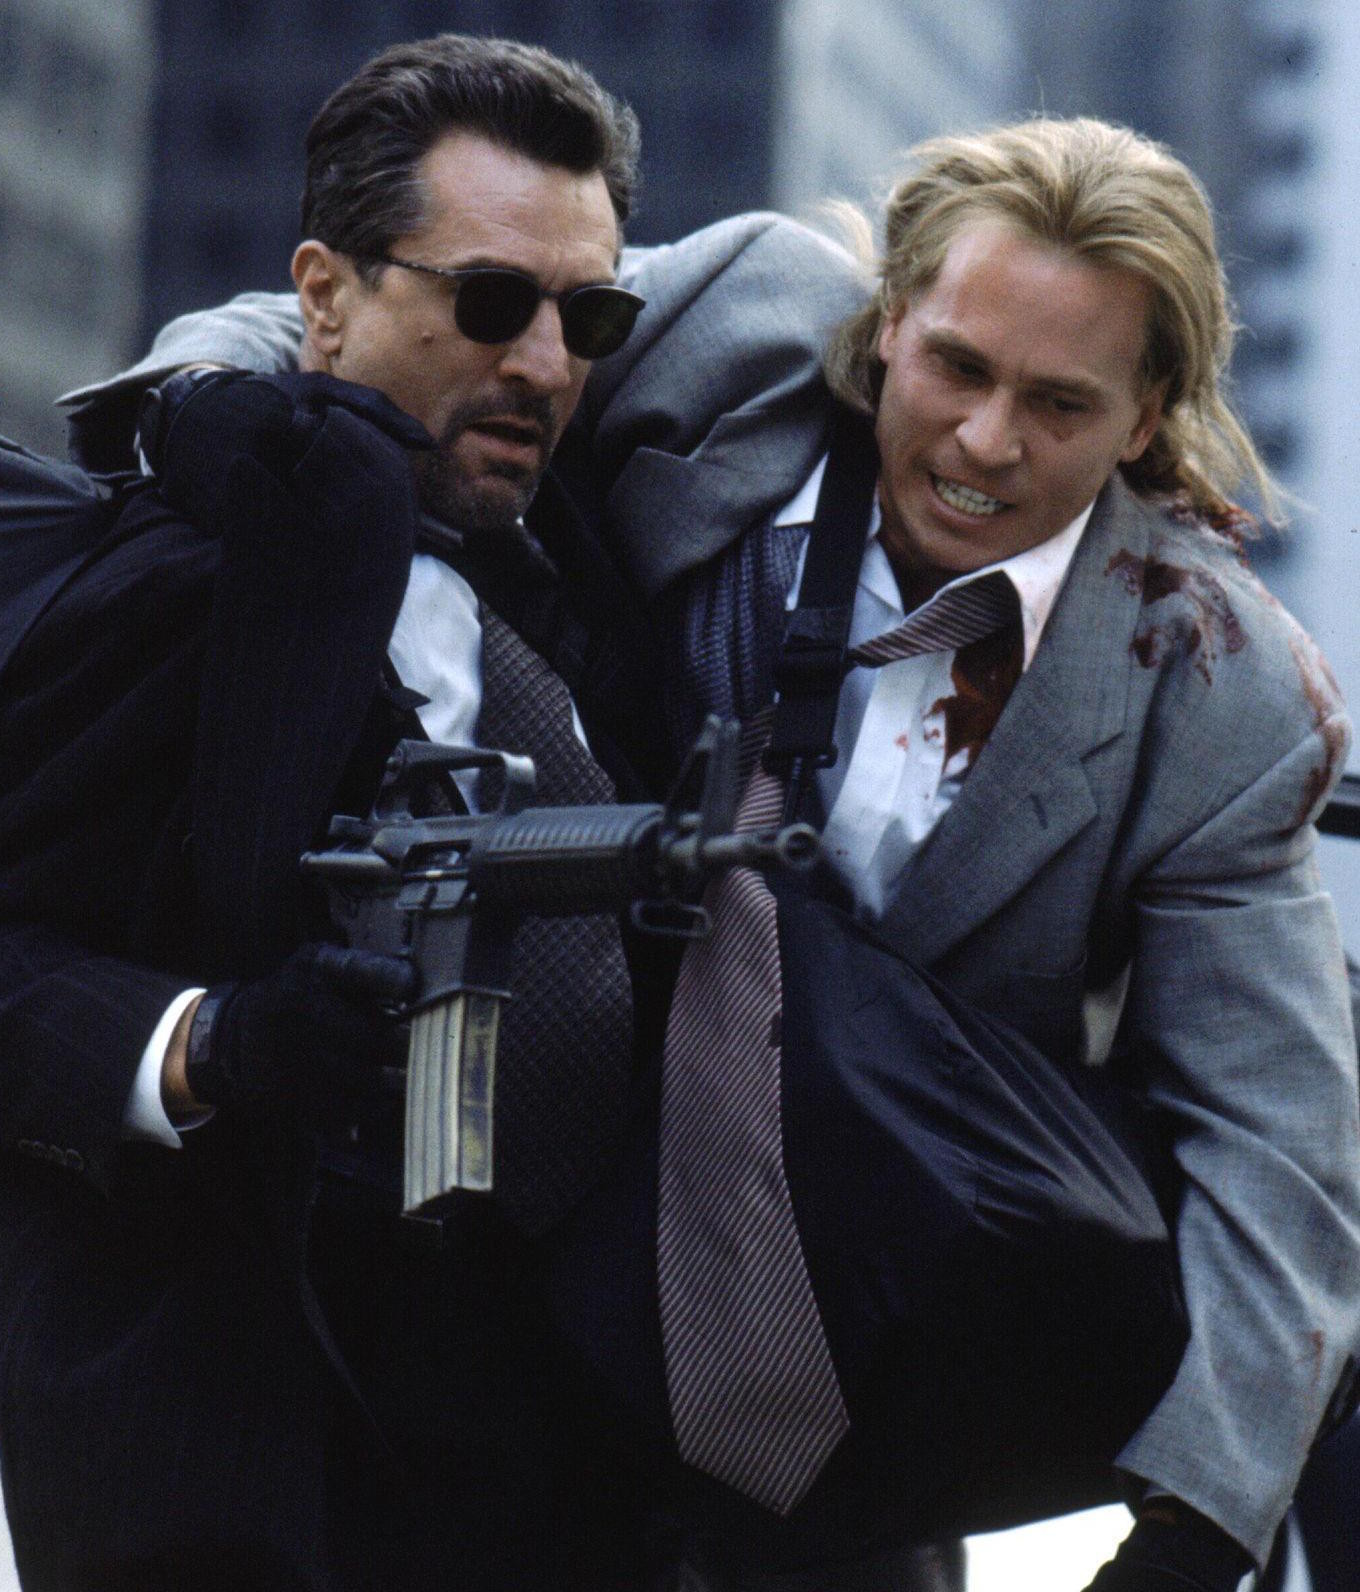 20 Things You Never Knew About 'Heat' - Beyond the Box Office - Zimbio